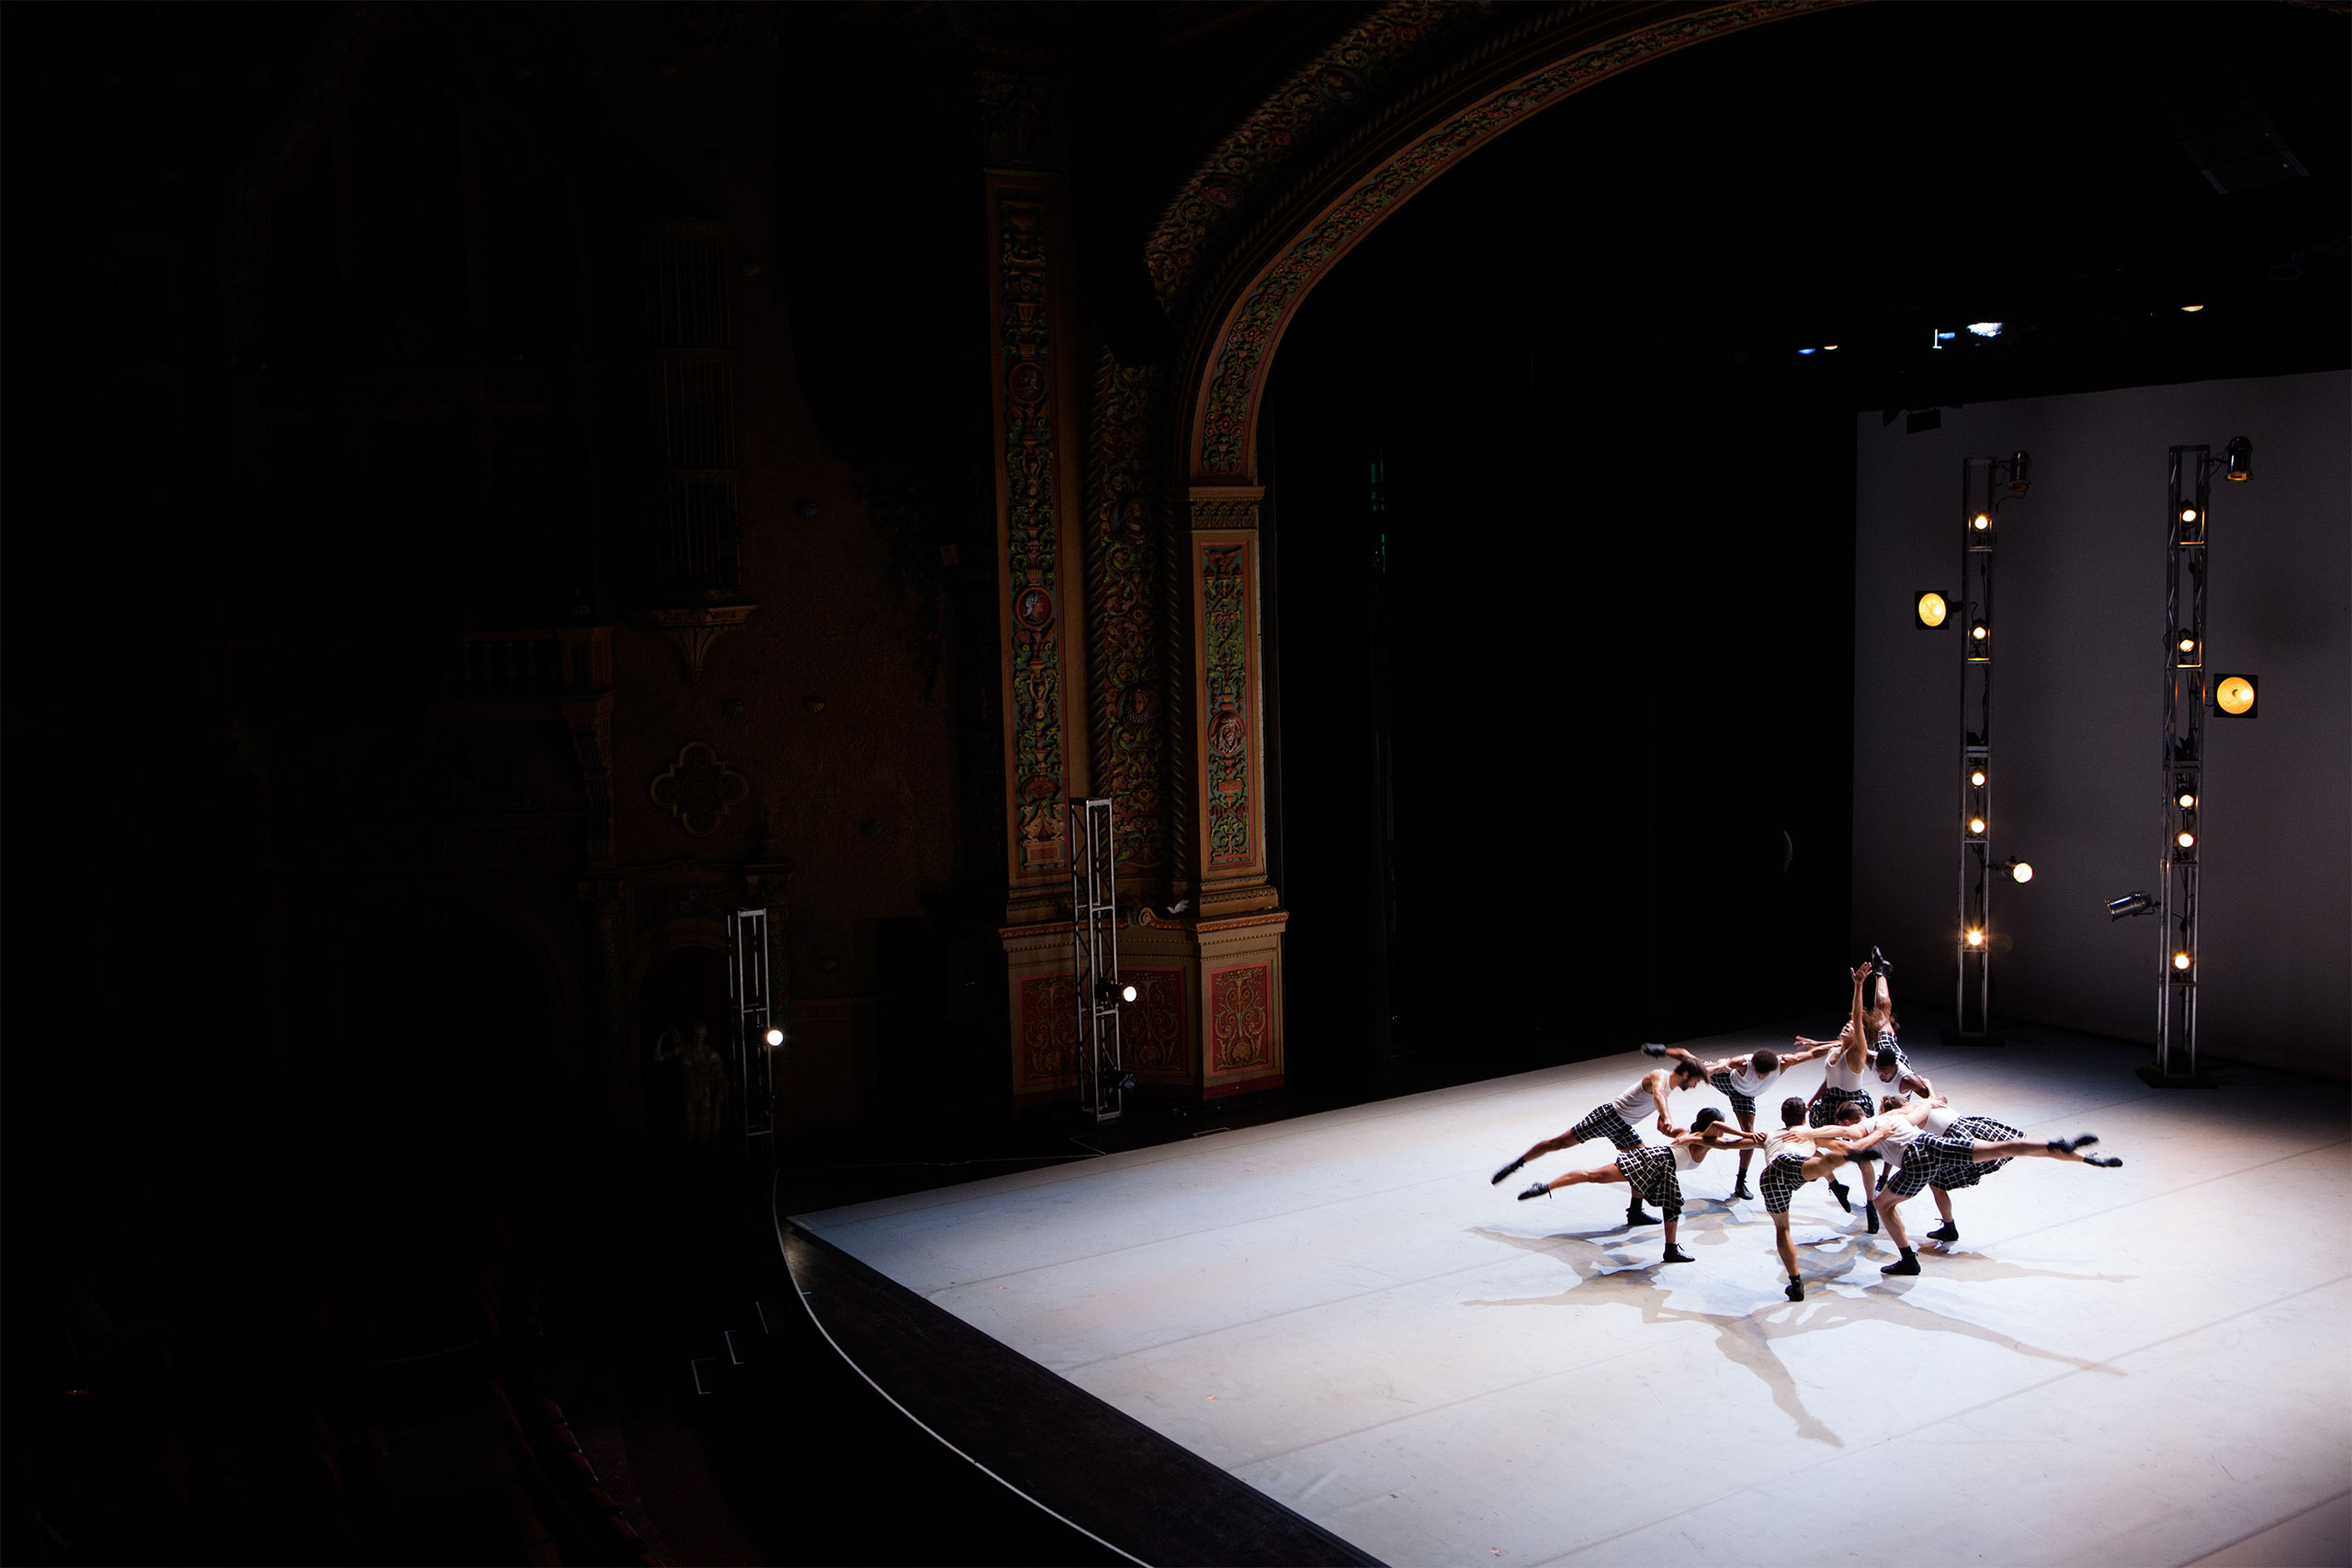 ''Hearts & Arrows'' dance performance, Van Cleef & Arpels, Olympia Theatre, Miami, 2014. Photo by Shayna Batya for Yatzer.